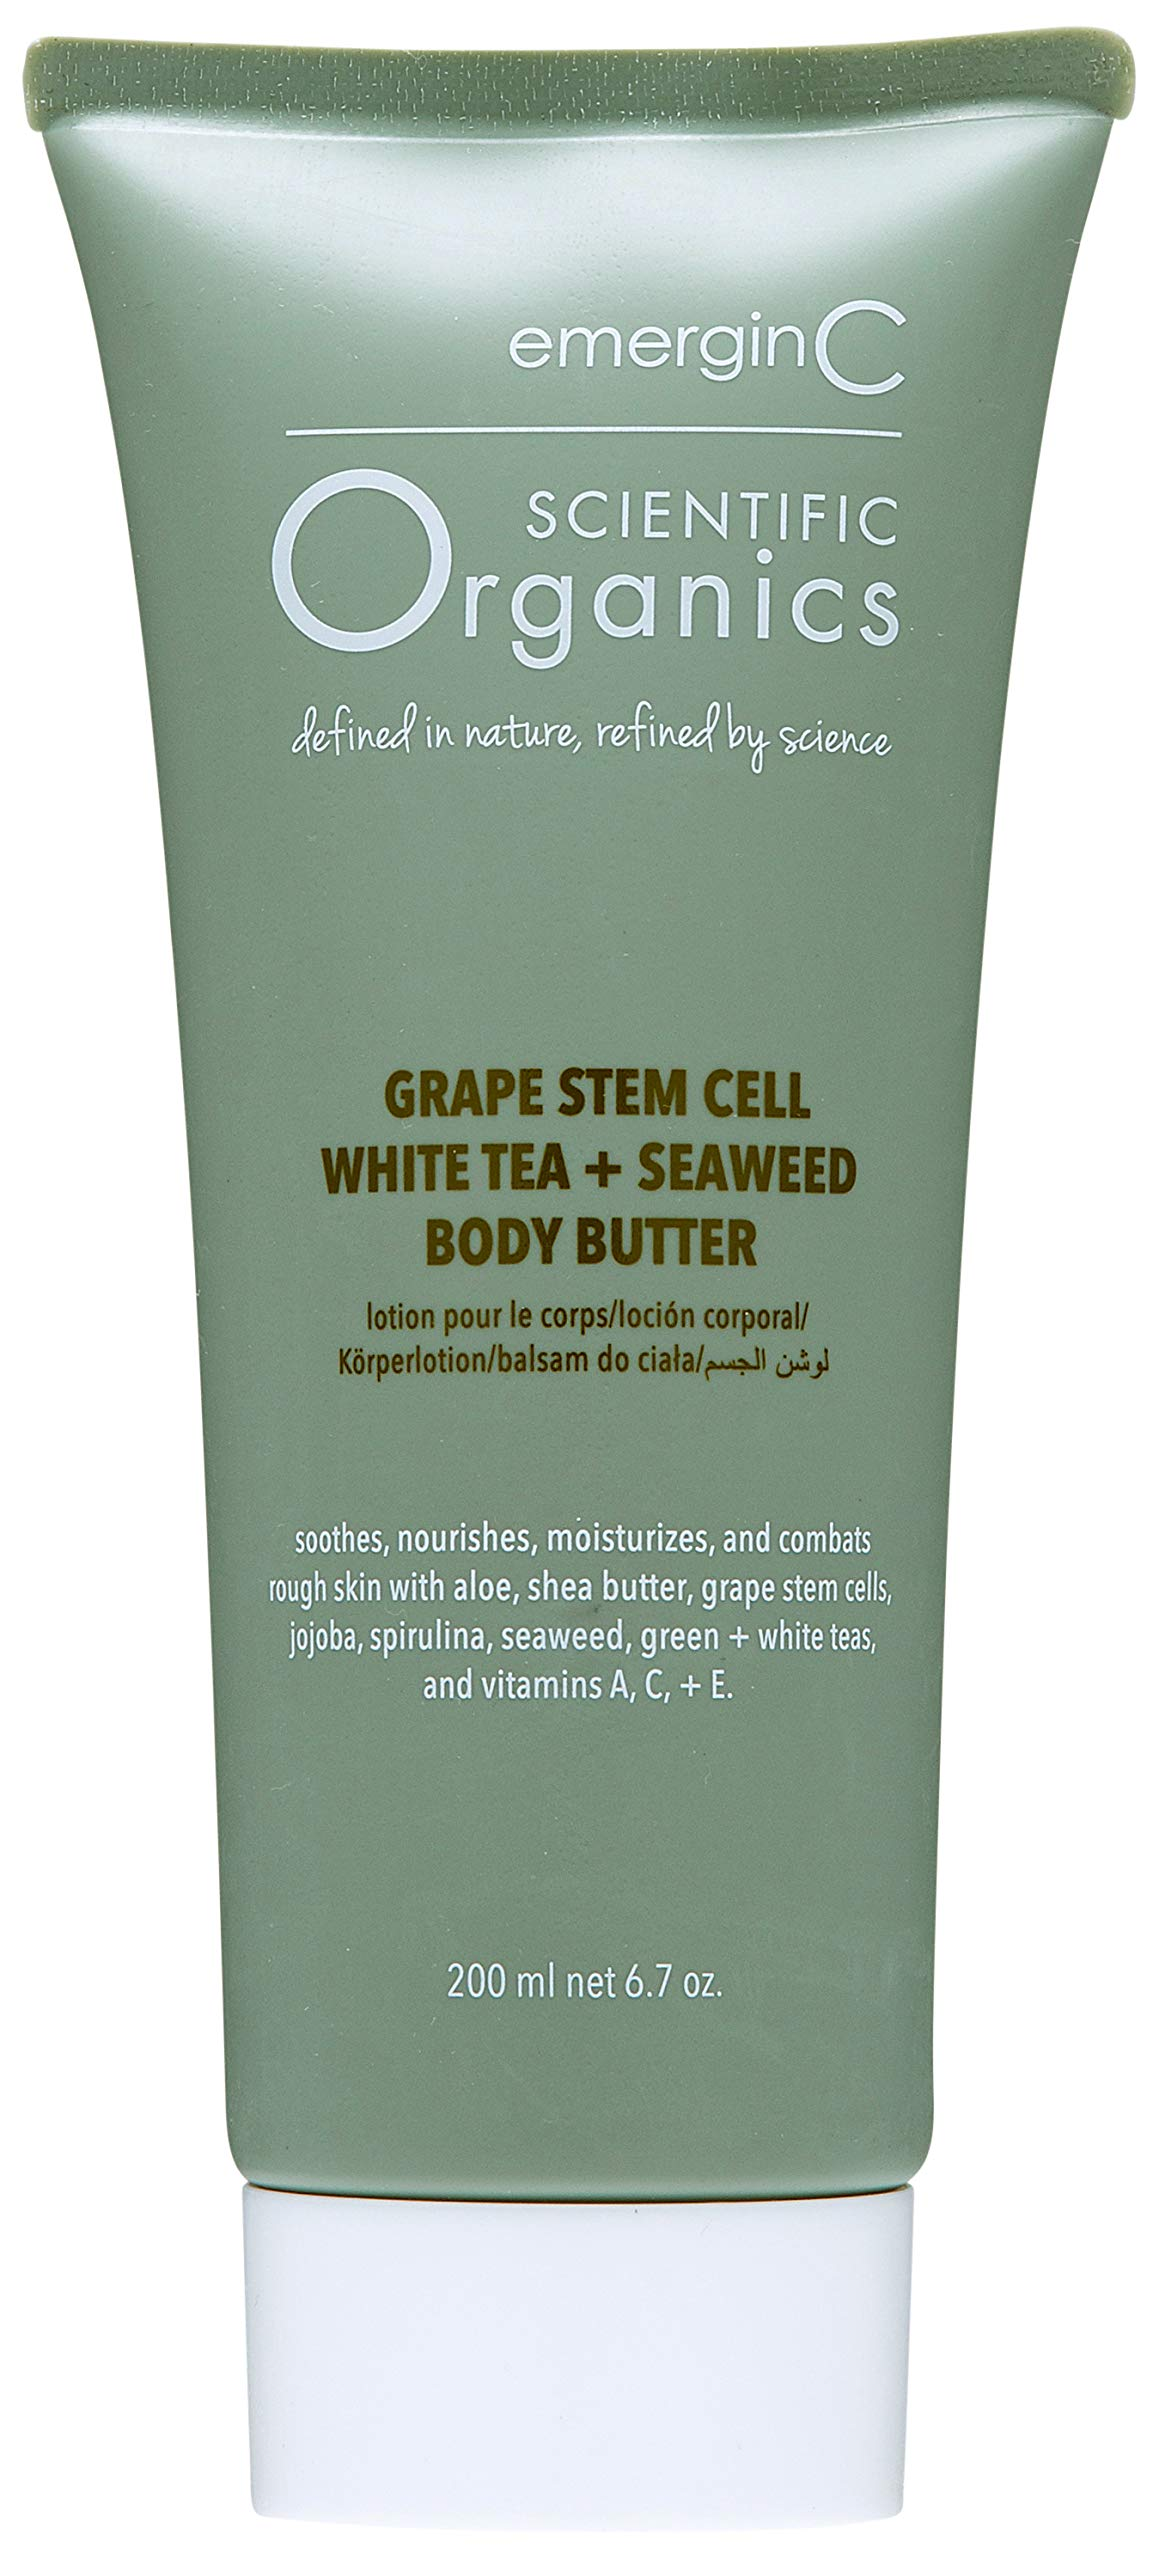 emerginC Scientific Organics - Grape Stem Cell, White Tea + Seaweed Body Butter, Nourishing Cream for Dry Skin (6.7oz / 200ml)